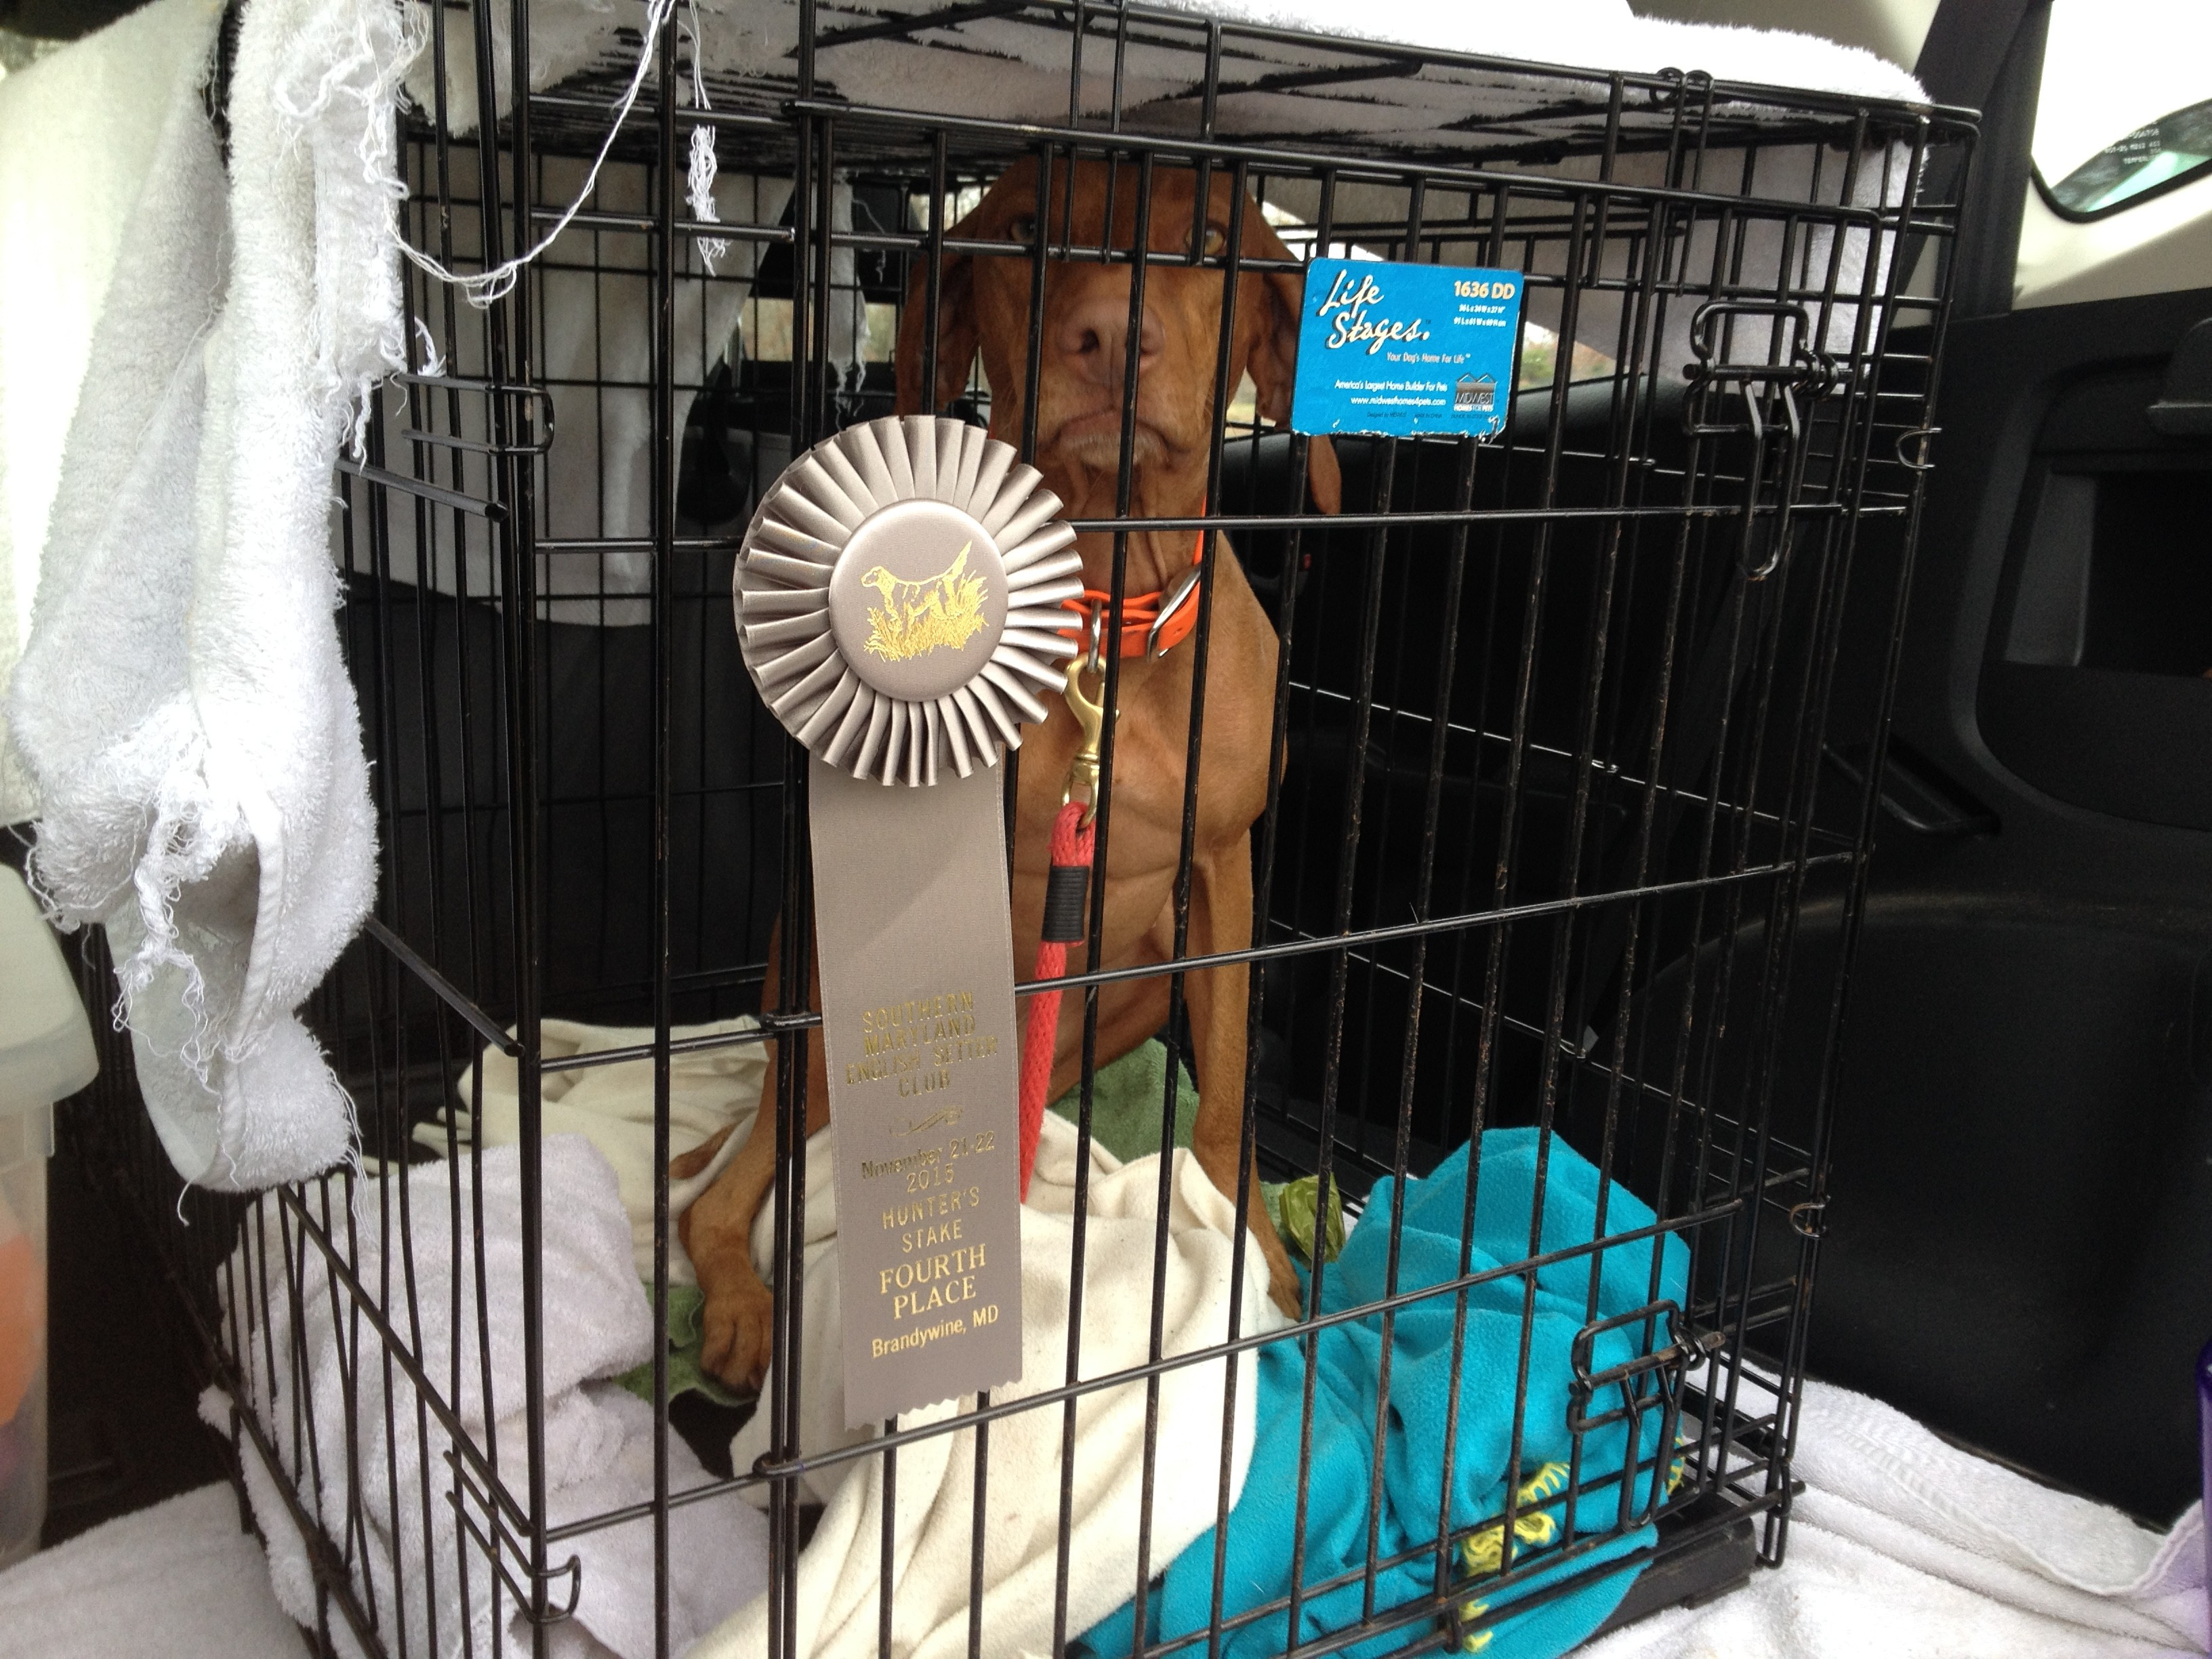 I won a ribbon! Now get me out of this crate.